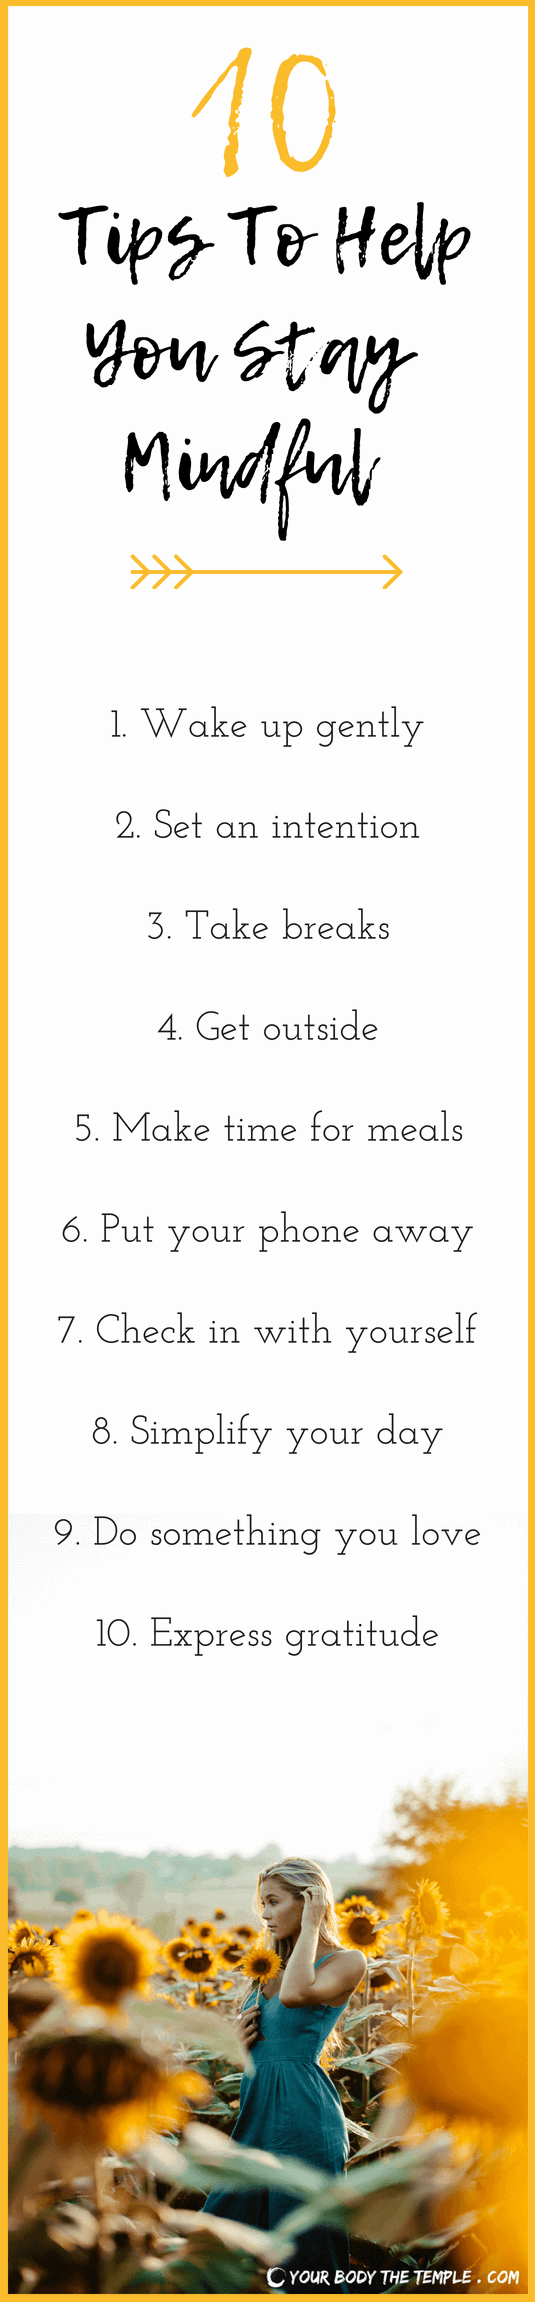 how to stay mindful